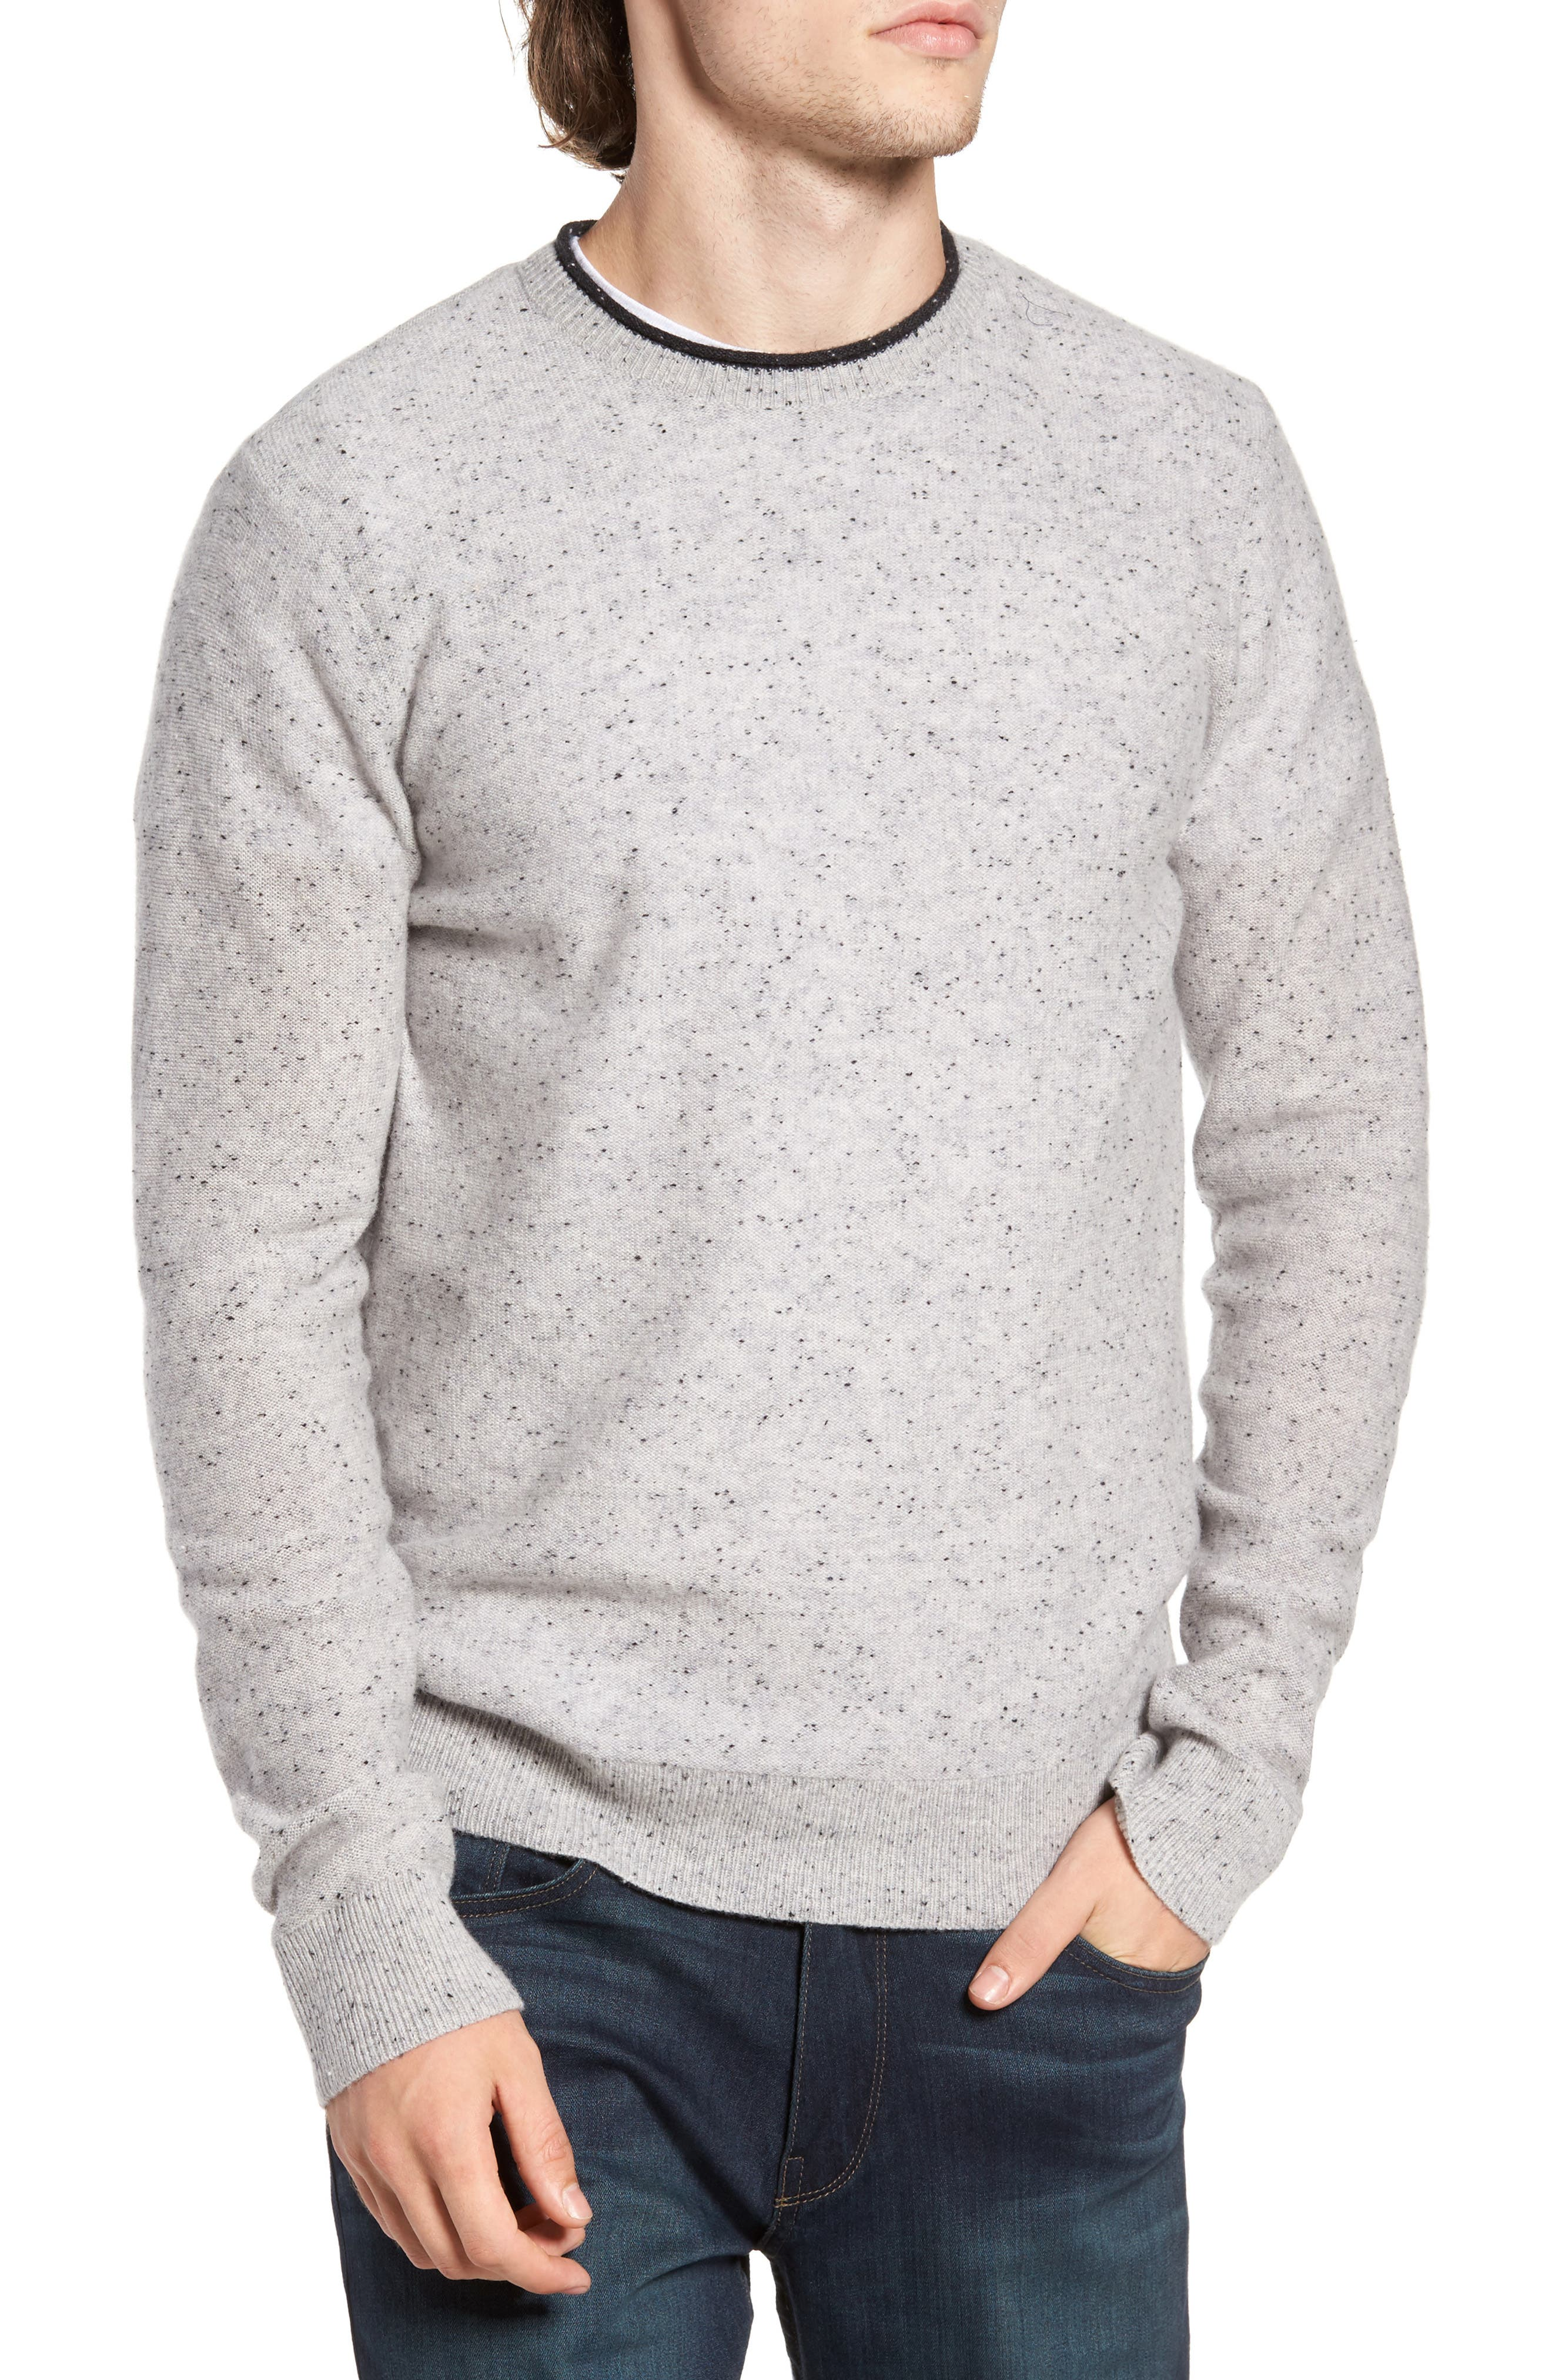 Nep Wool & Cashmere Sweater,                             Main thumbnail 1, color,                             Grey Donegal